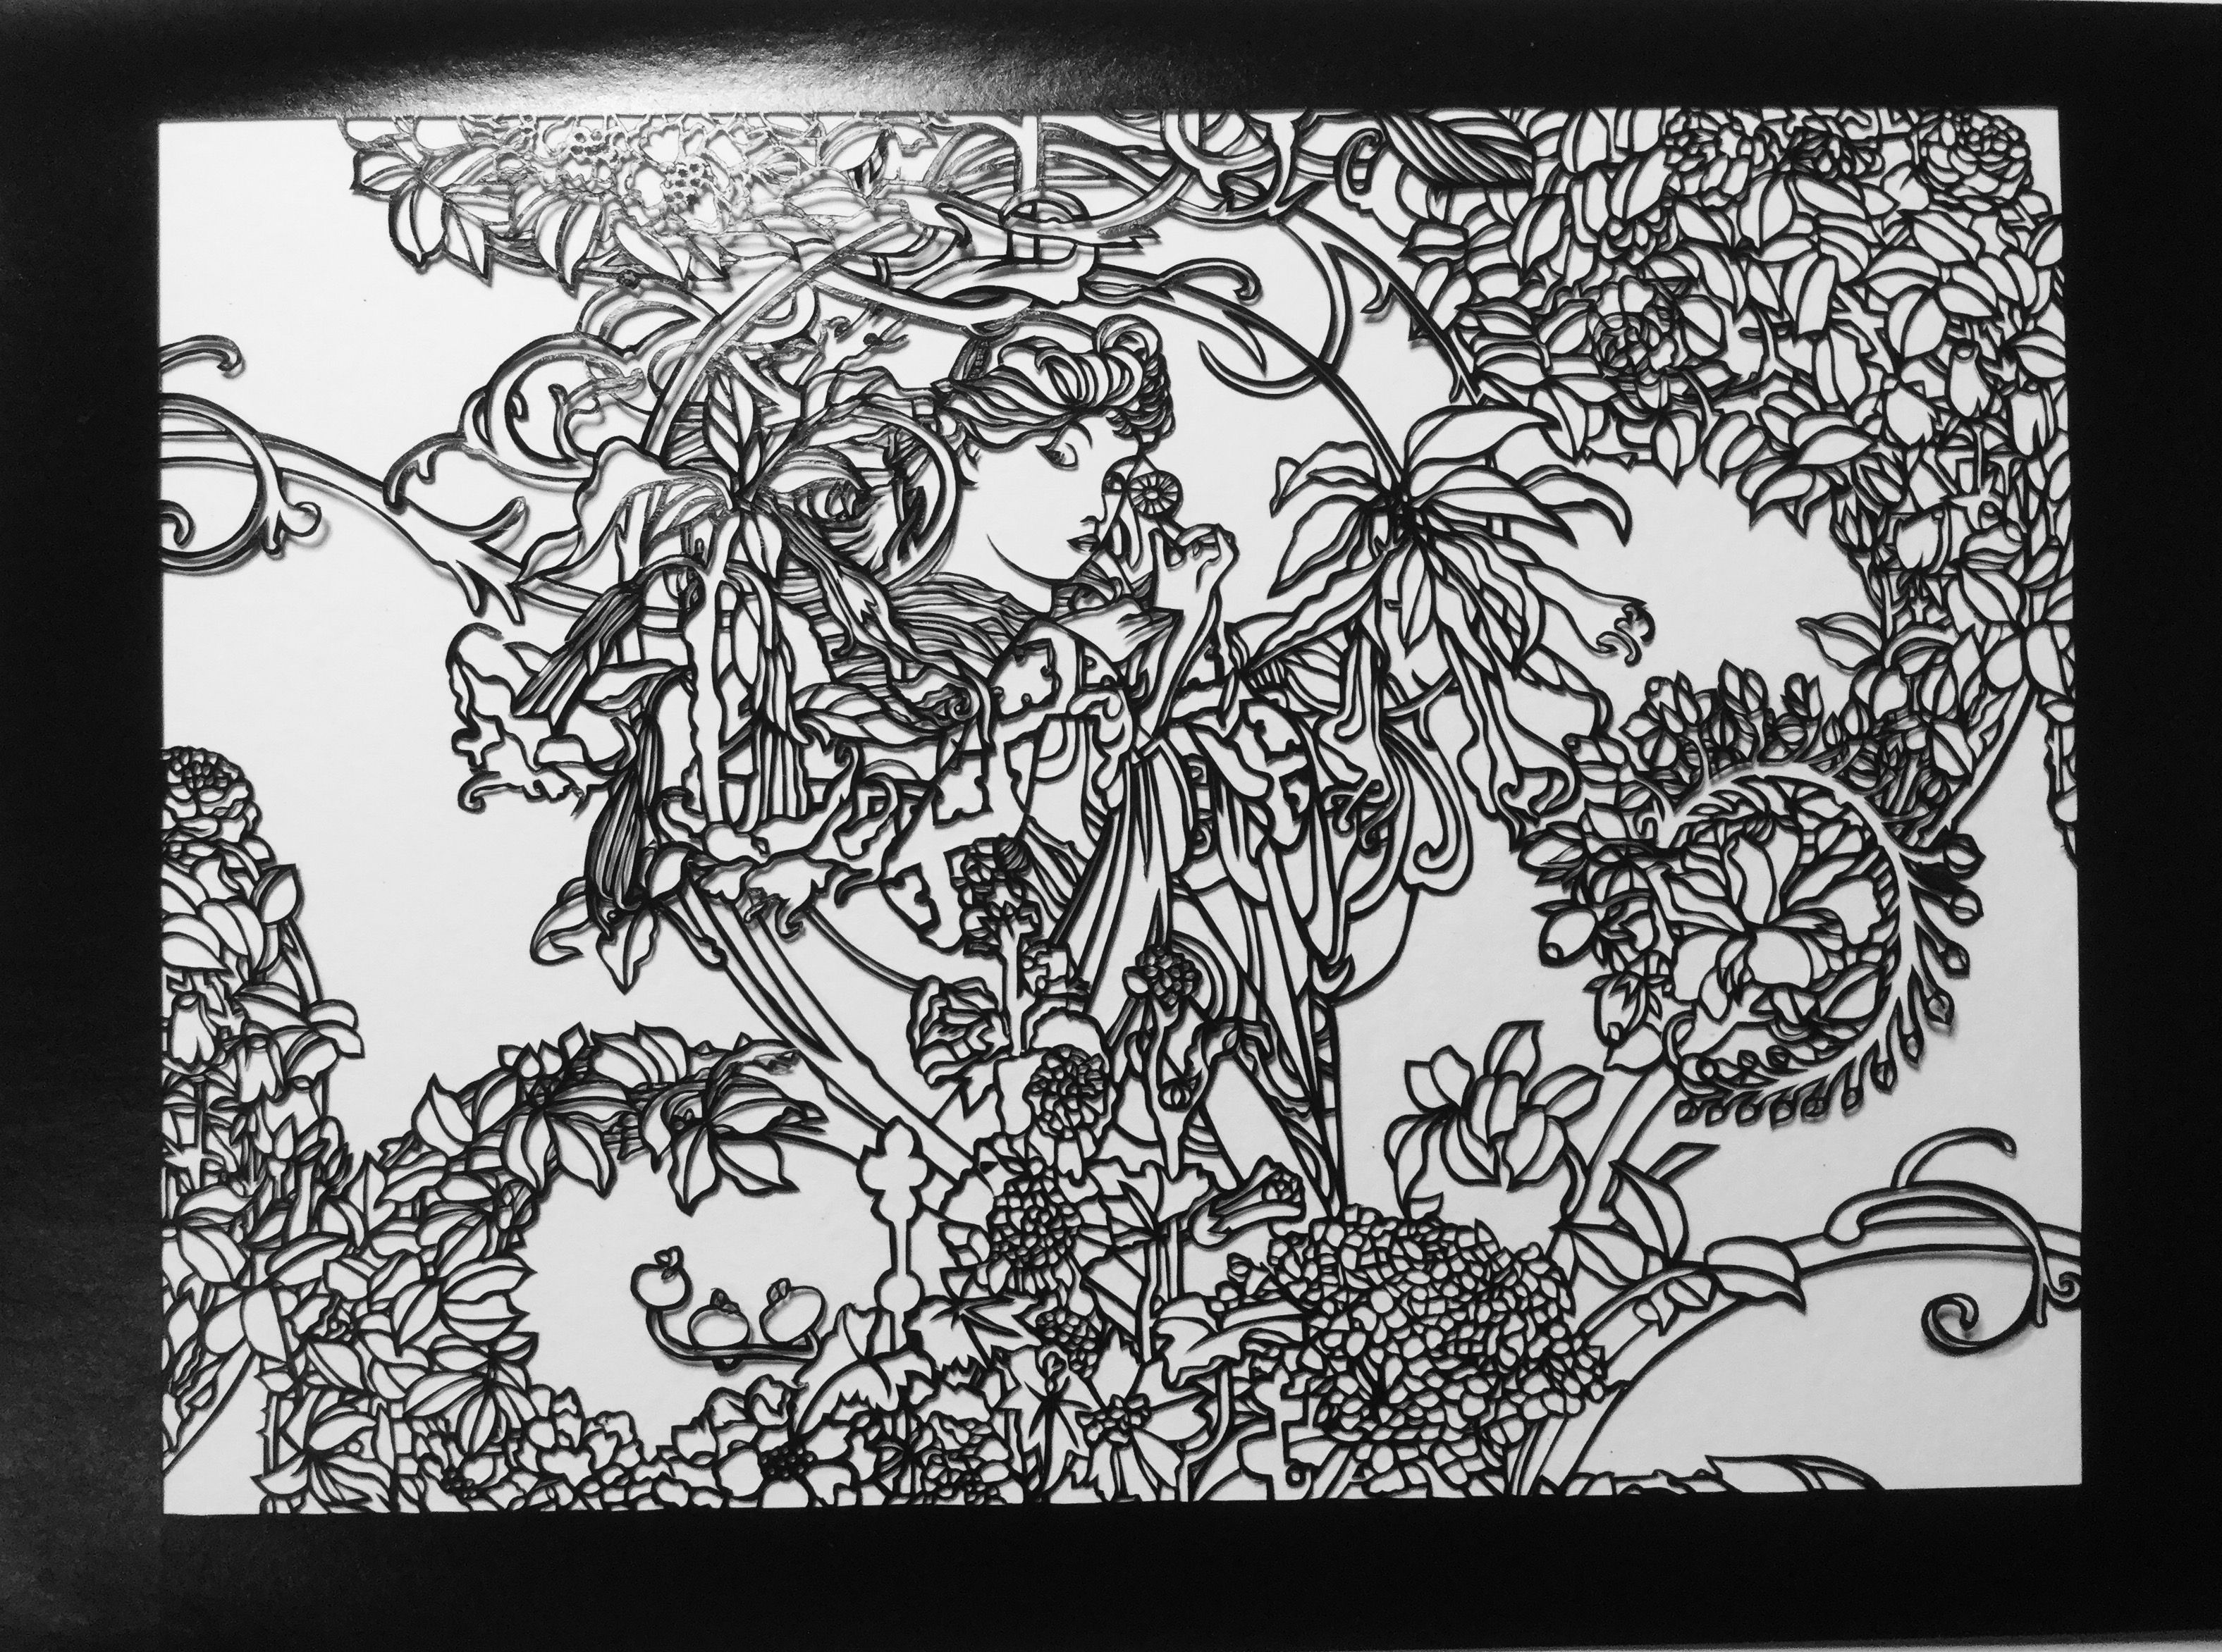 Finished Cut Of This Public Domain Alphonse Mucha Wip Alphonse Mucha Paper Cut Femme A La